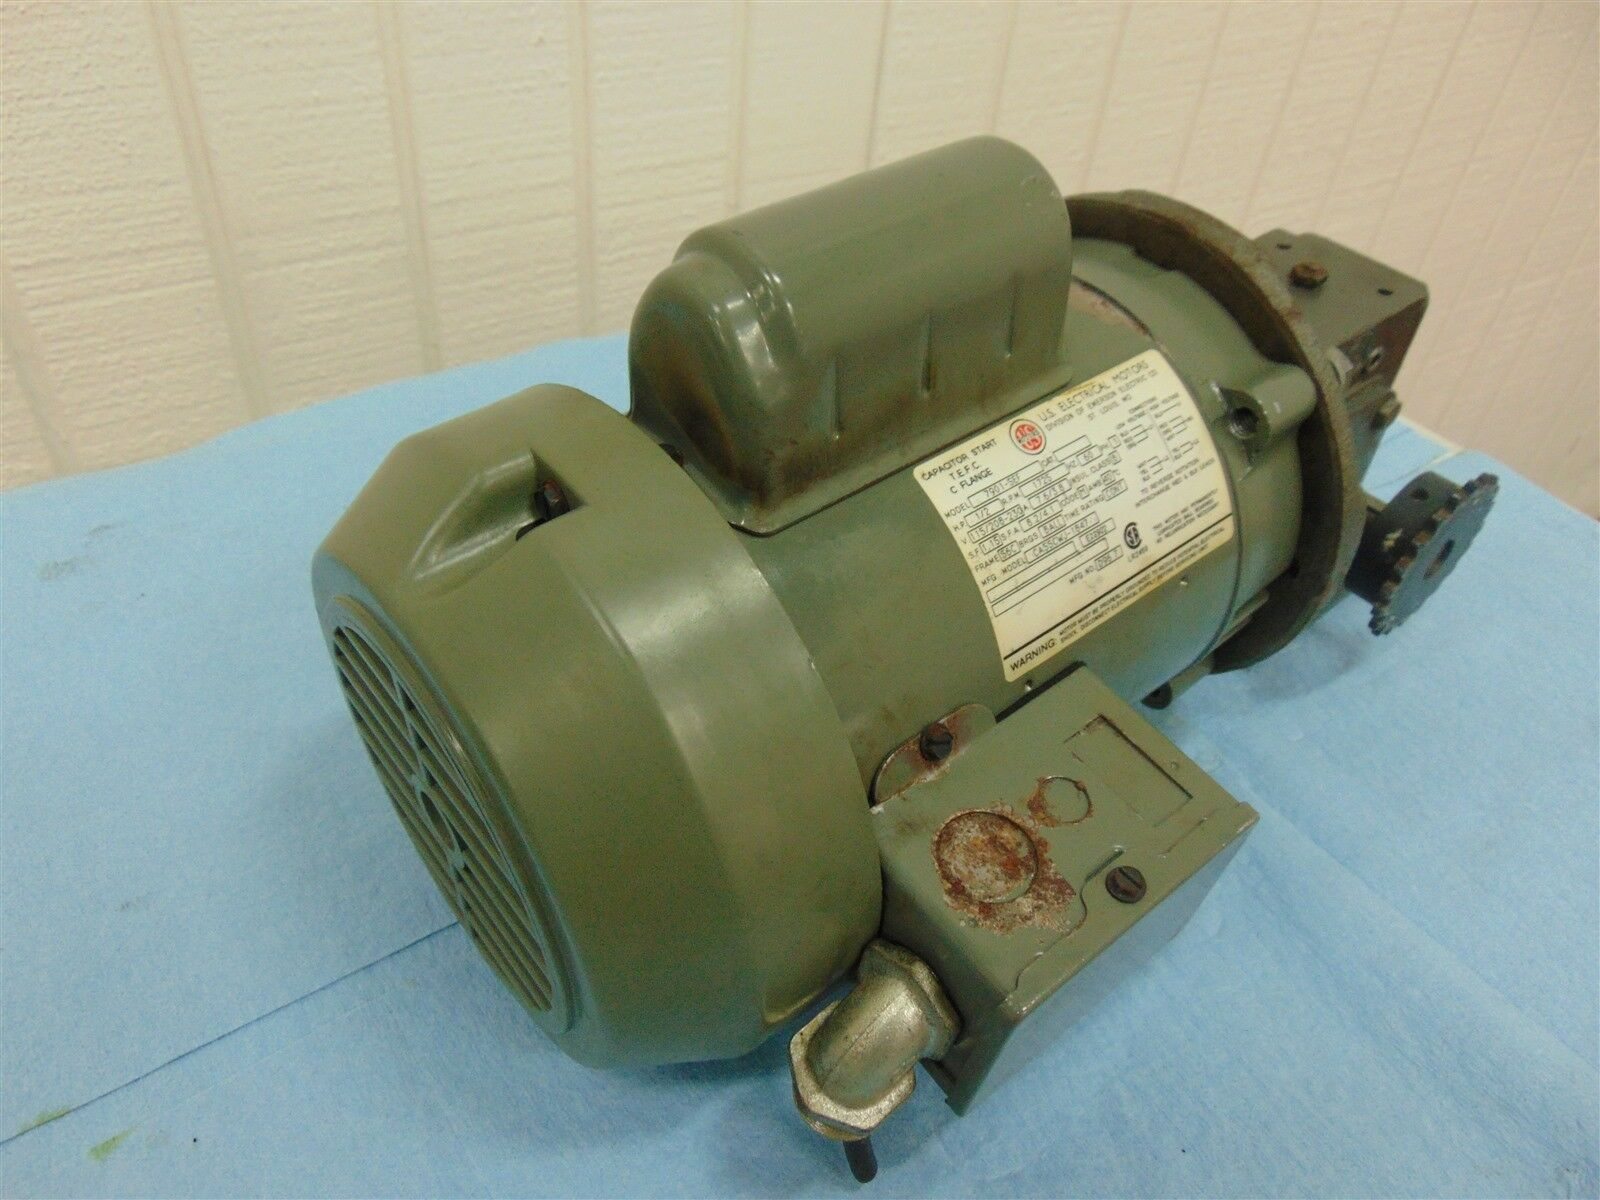 U.S. Motors 7901-SEF Electric Motor 1/2 HP Fr: 56C 7.6/3.8A 115/208-230V 1725RPM